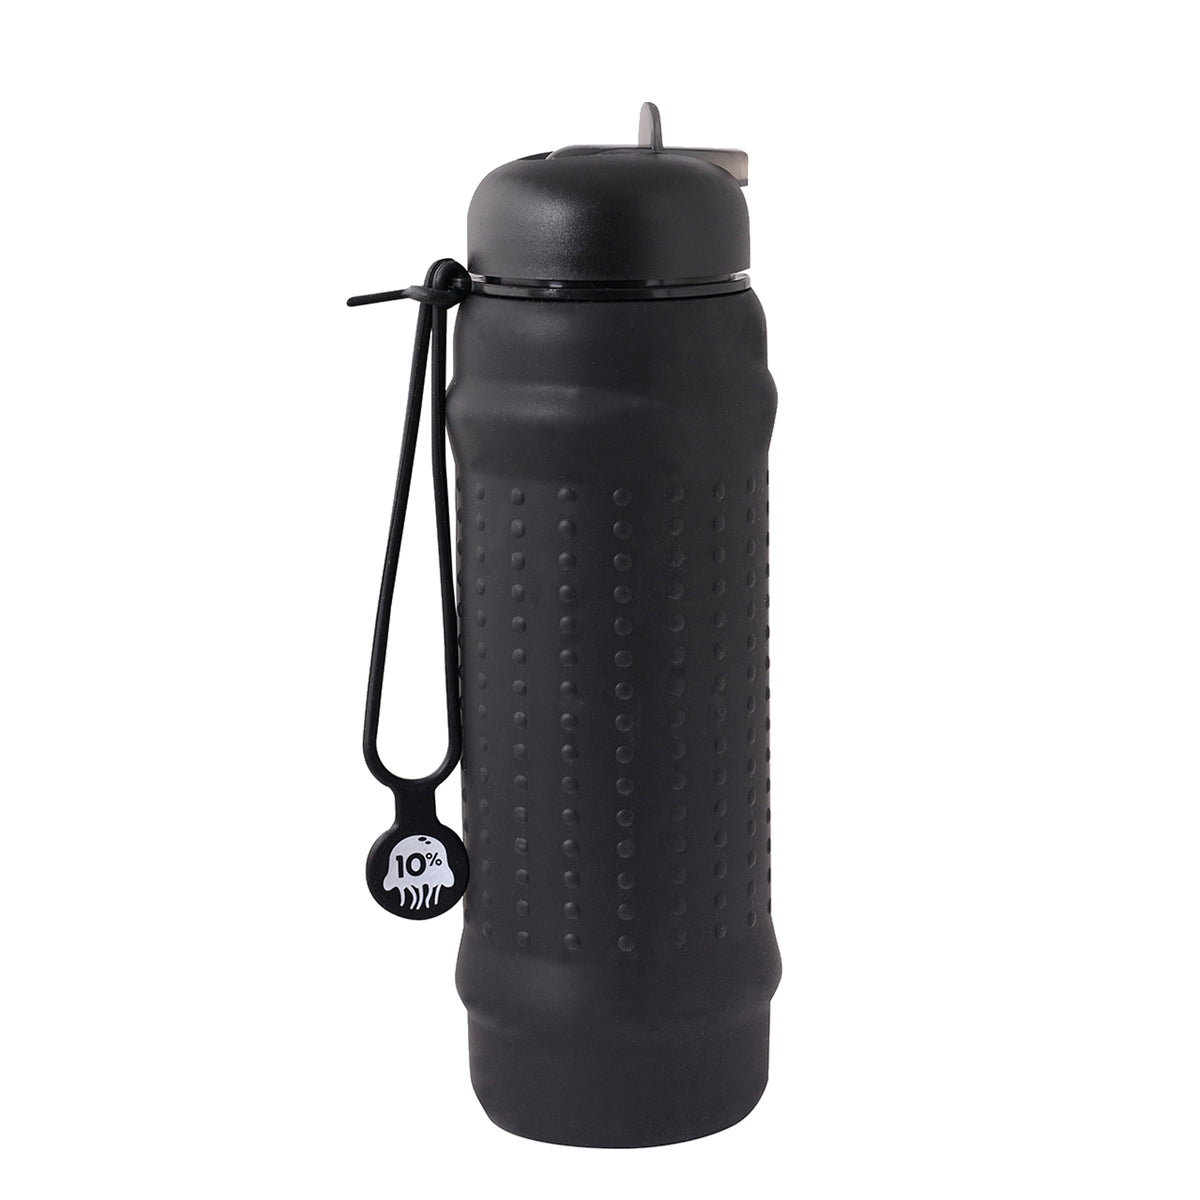 Rolla Bottle Black, Black Lid + Black Strap